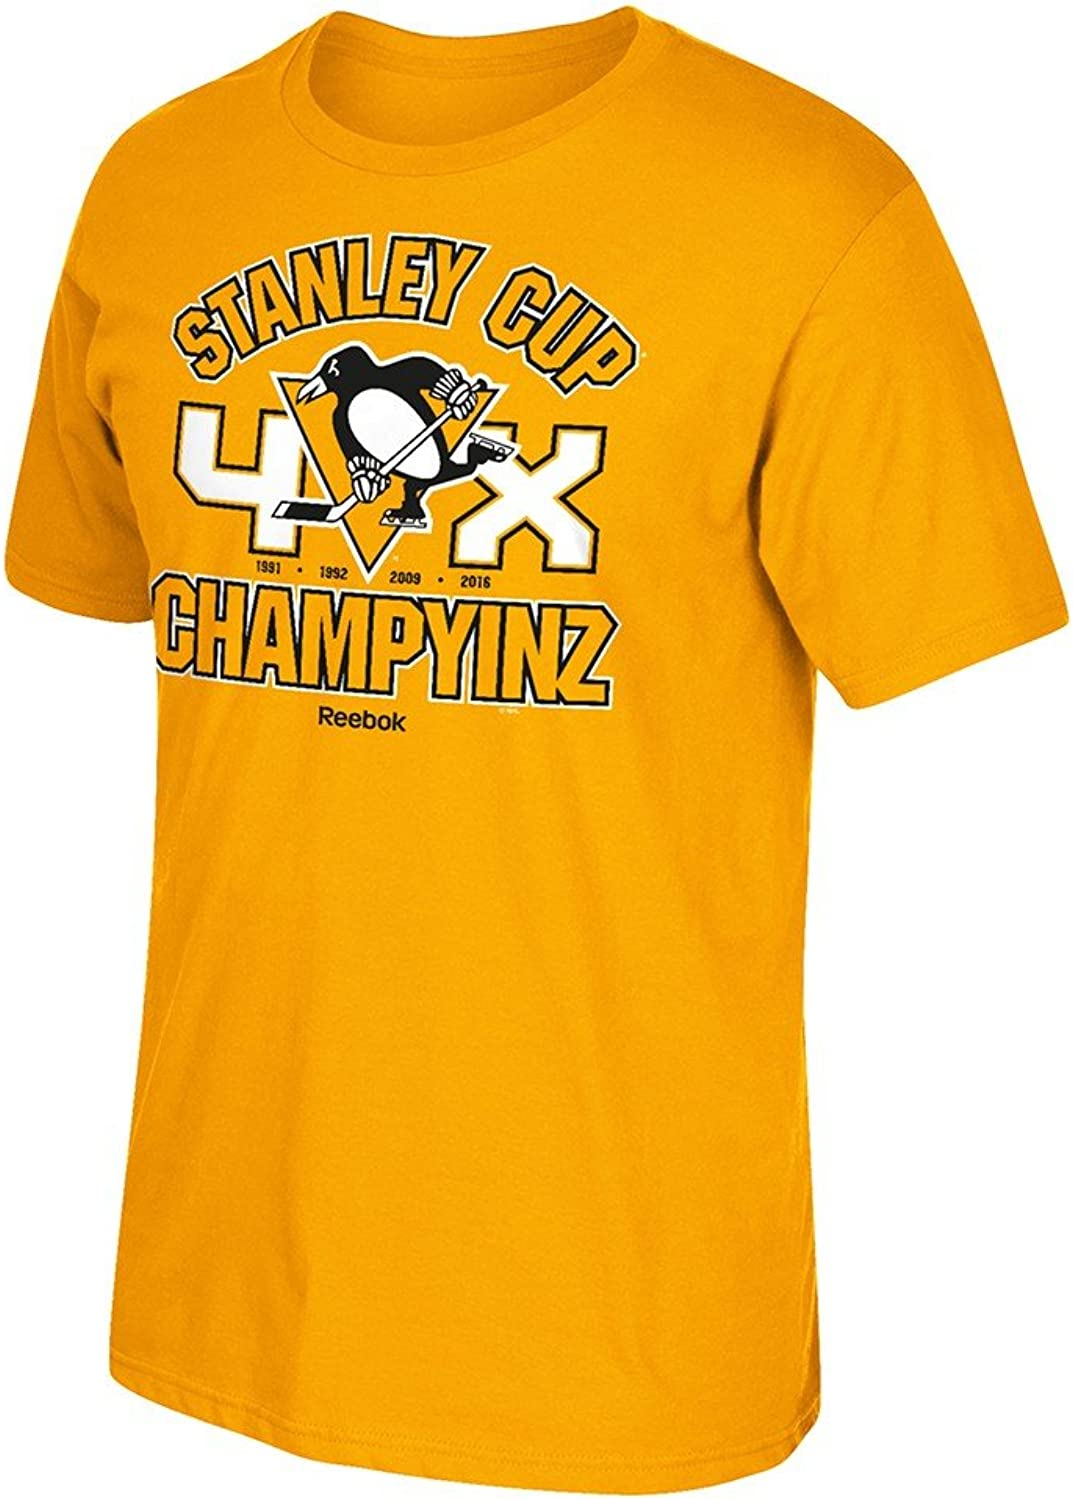 Pittsburgh Penguins gold 2016 Stanley Cup Champions 4X ChampYinz Tshirt